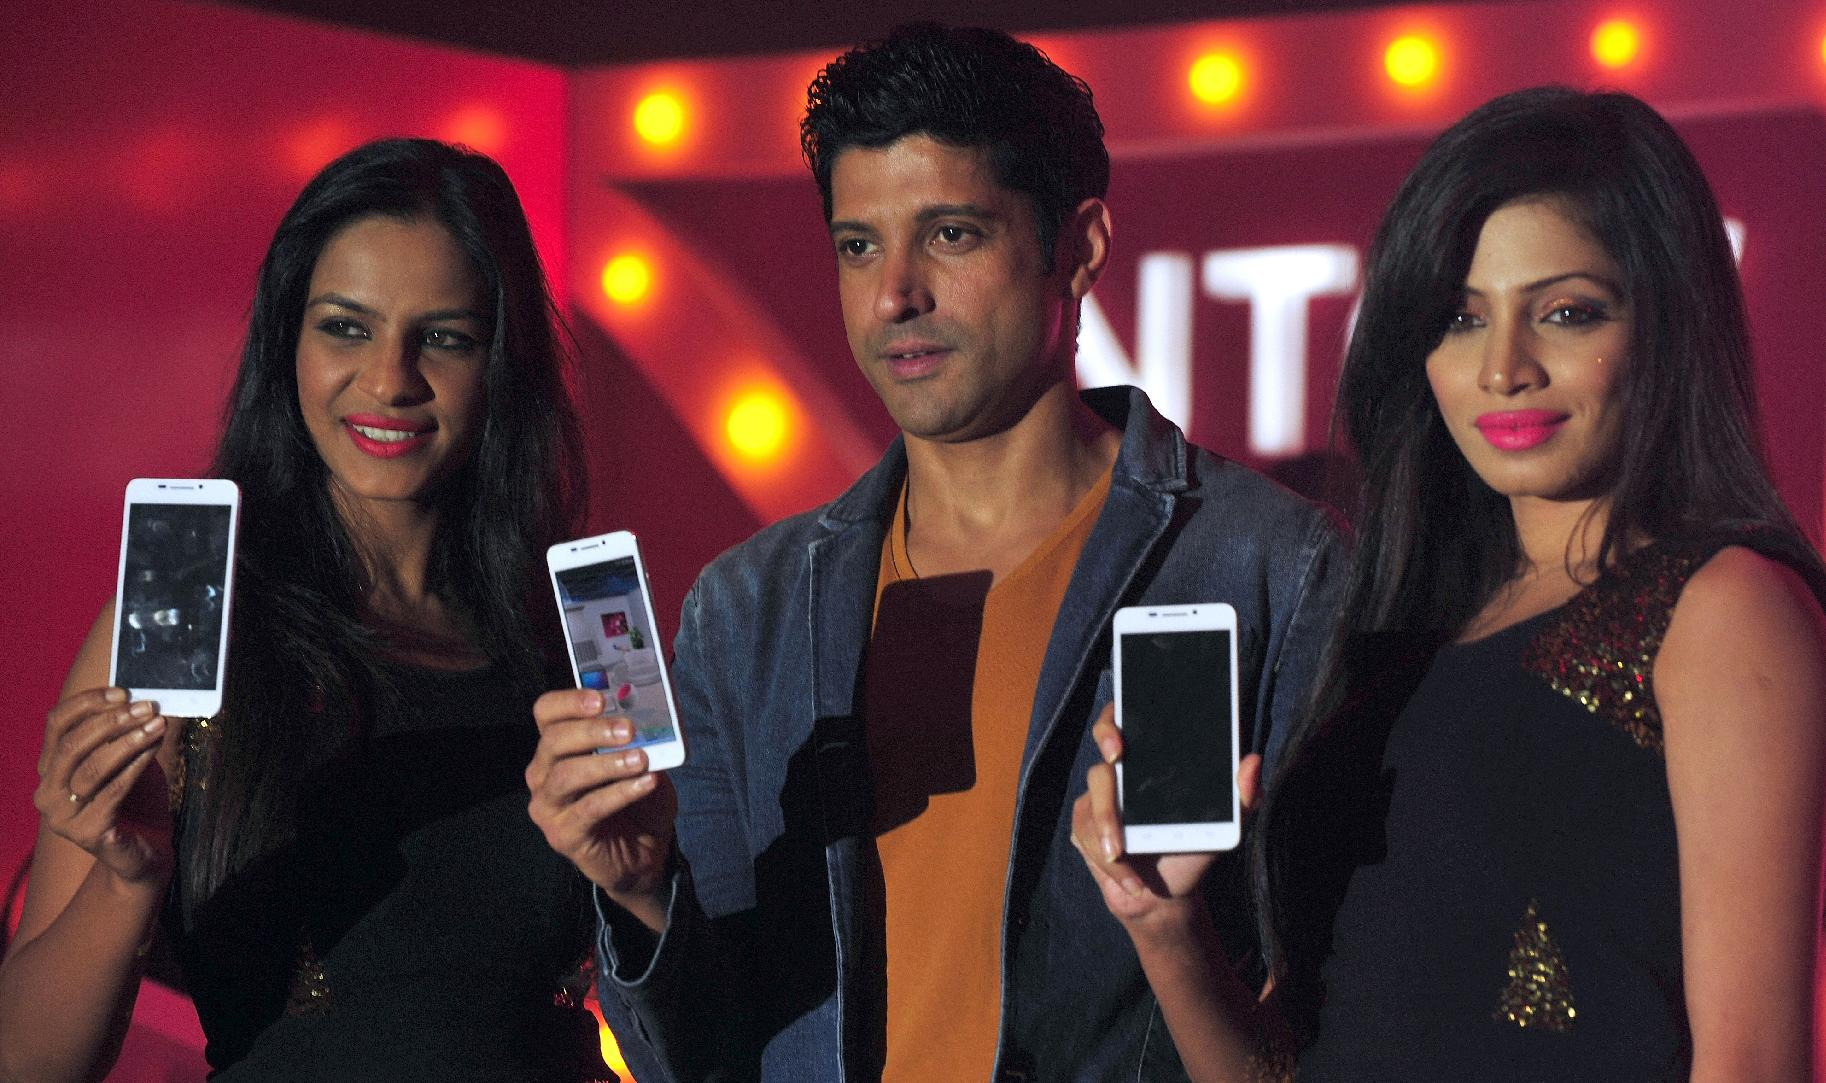 Smartphone makers dial up growth in India